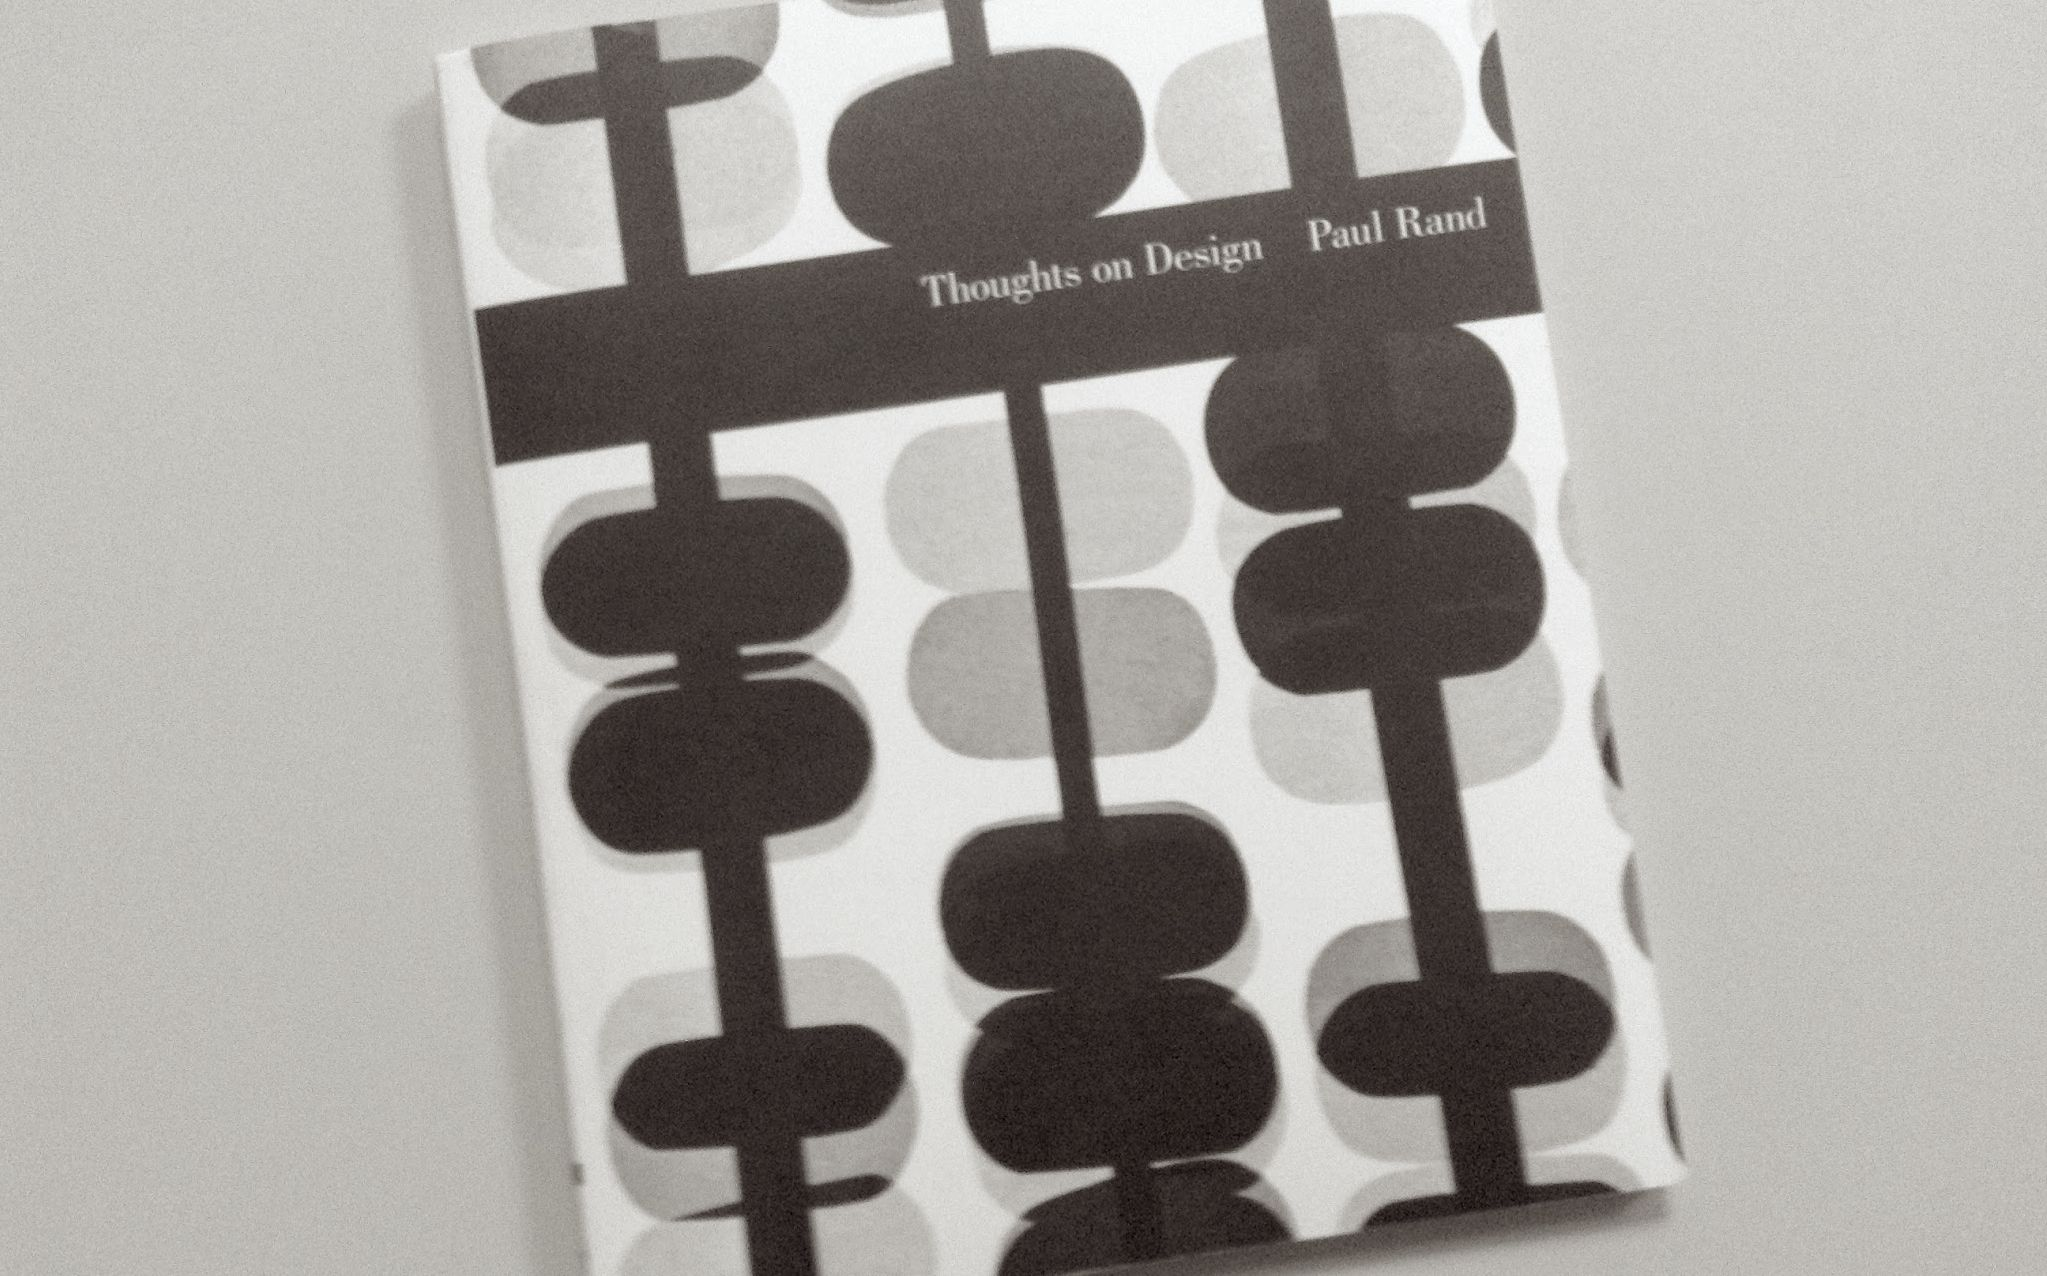 Thoughts on Design, par Paul Rand